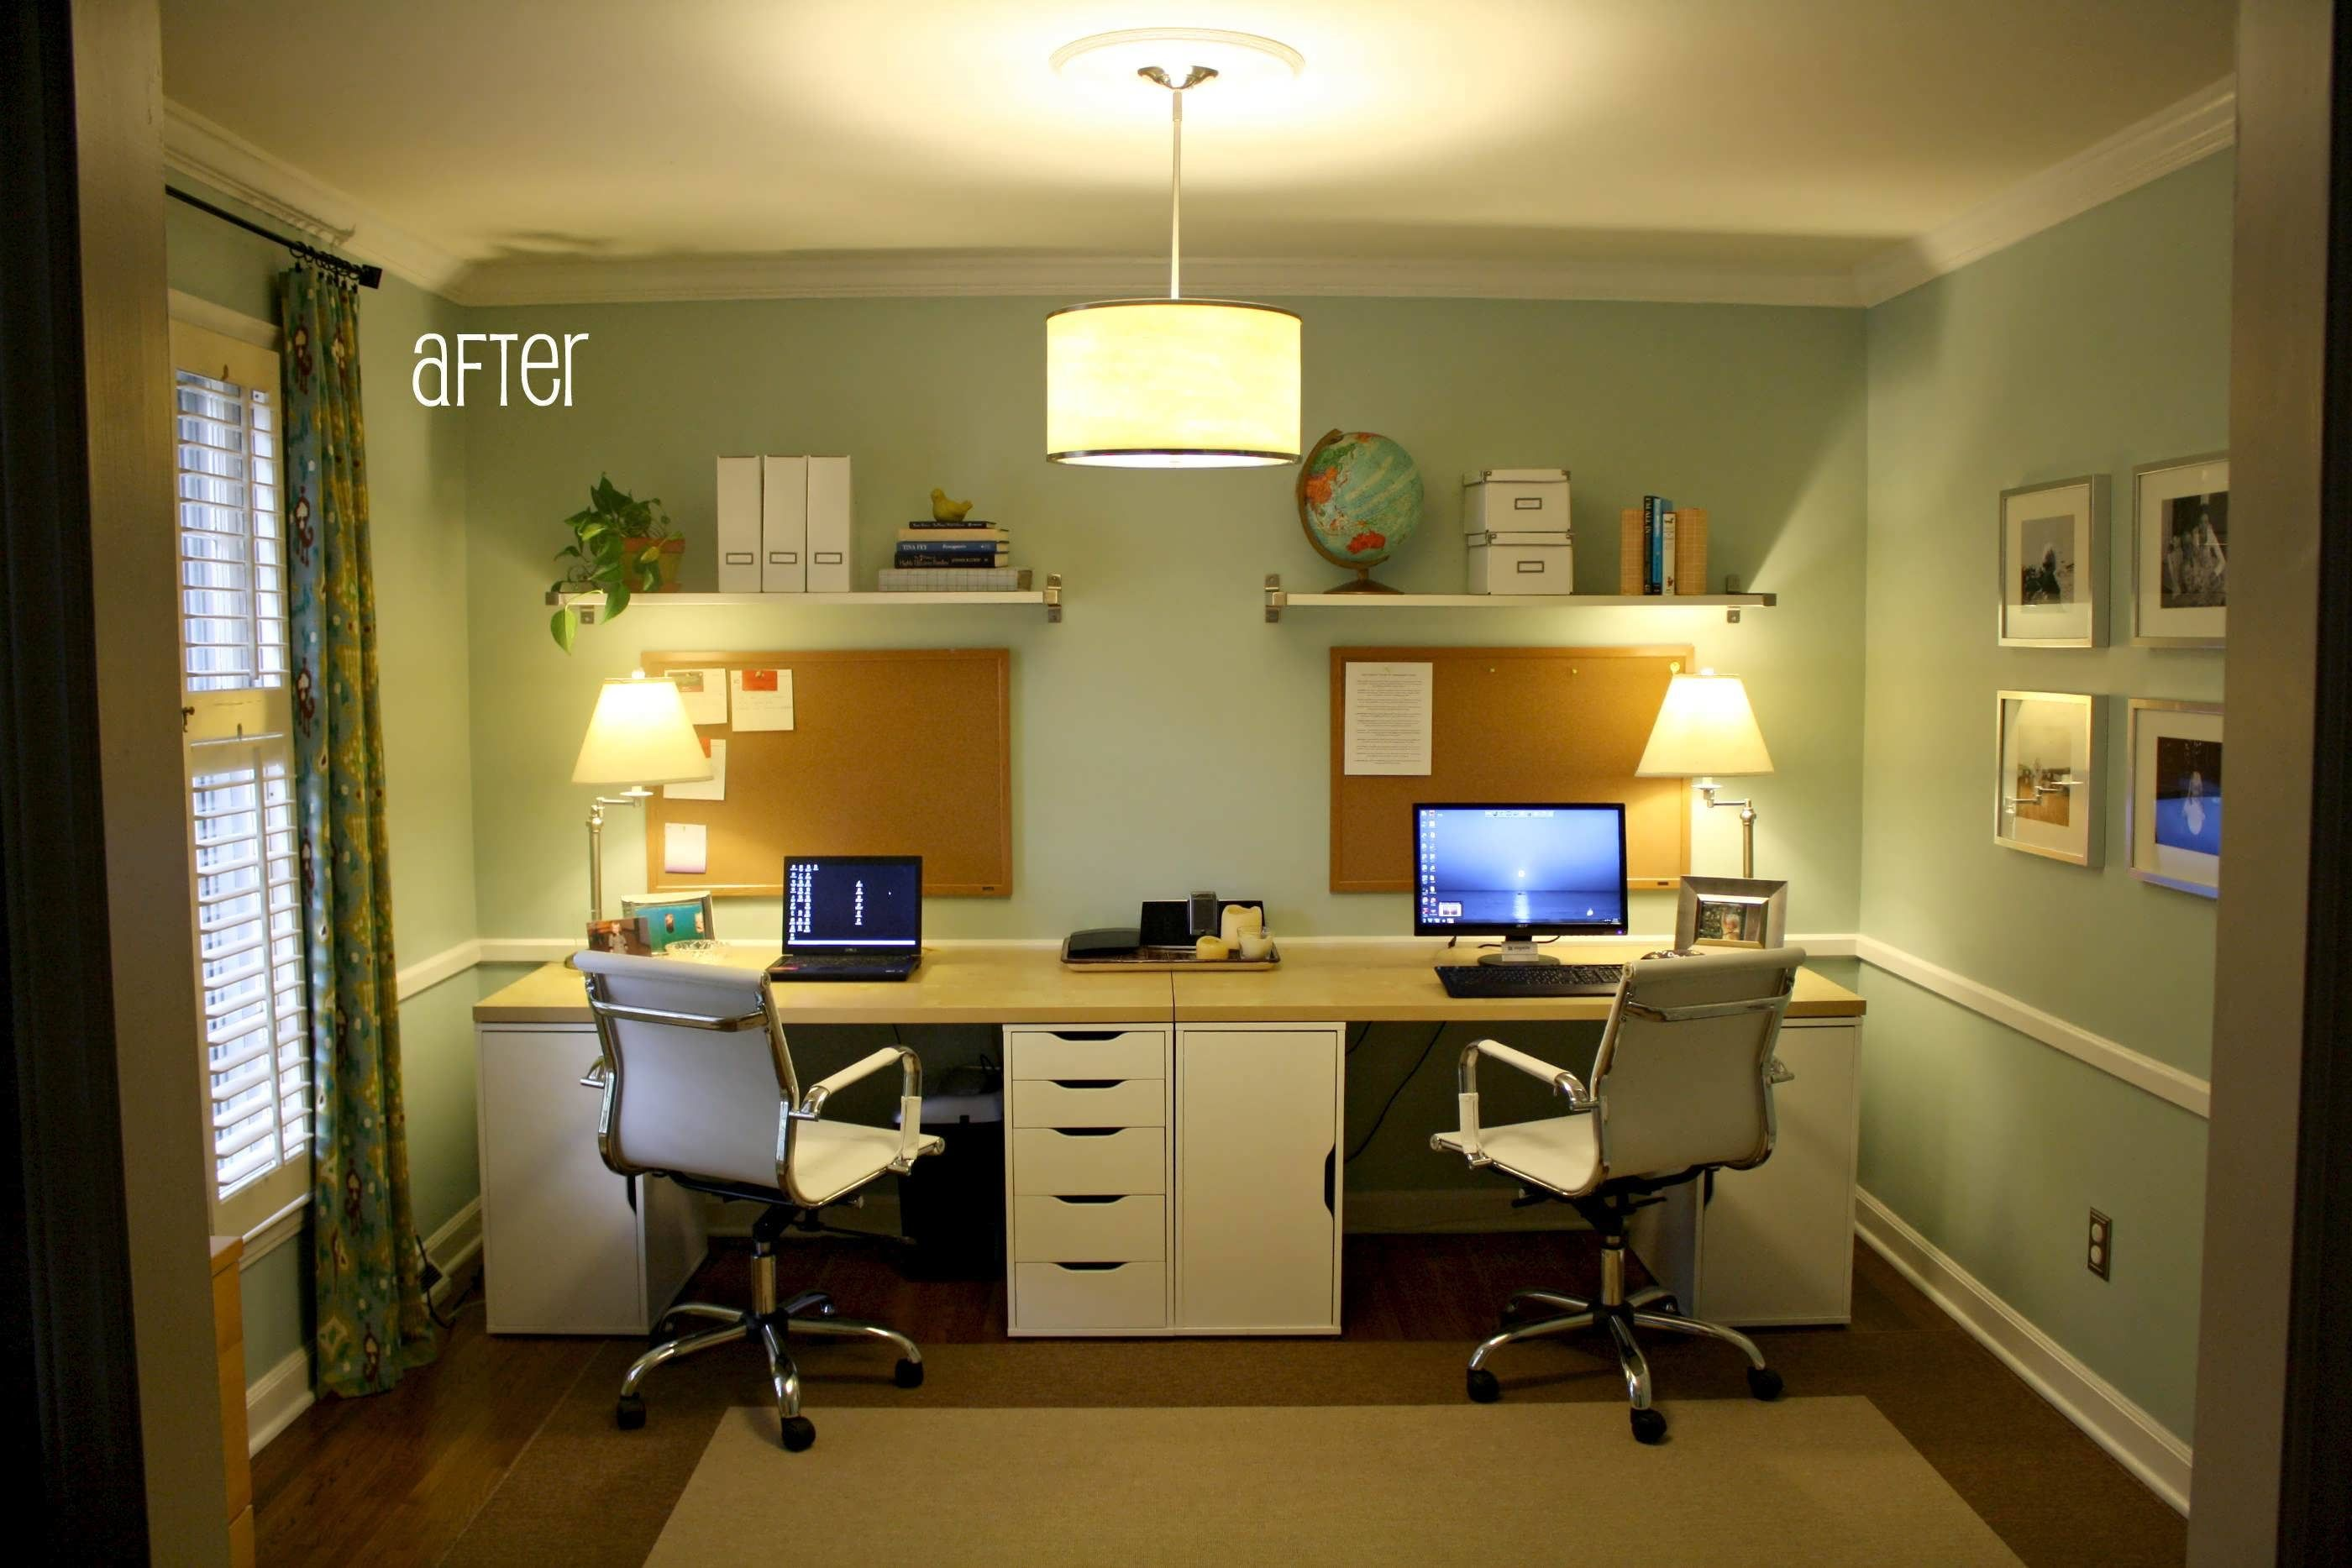 99 Home fice Double Desk Country Home fice Furniture Check